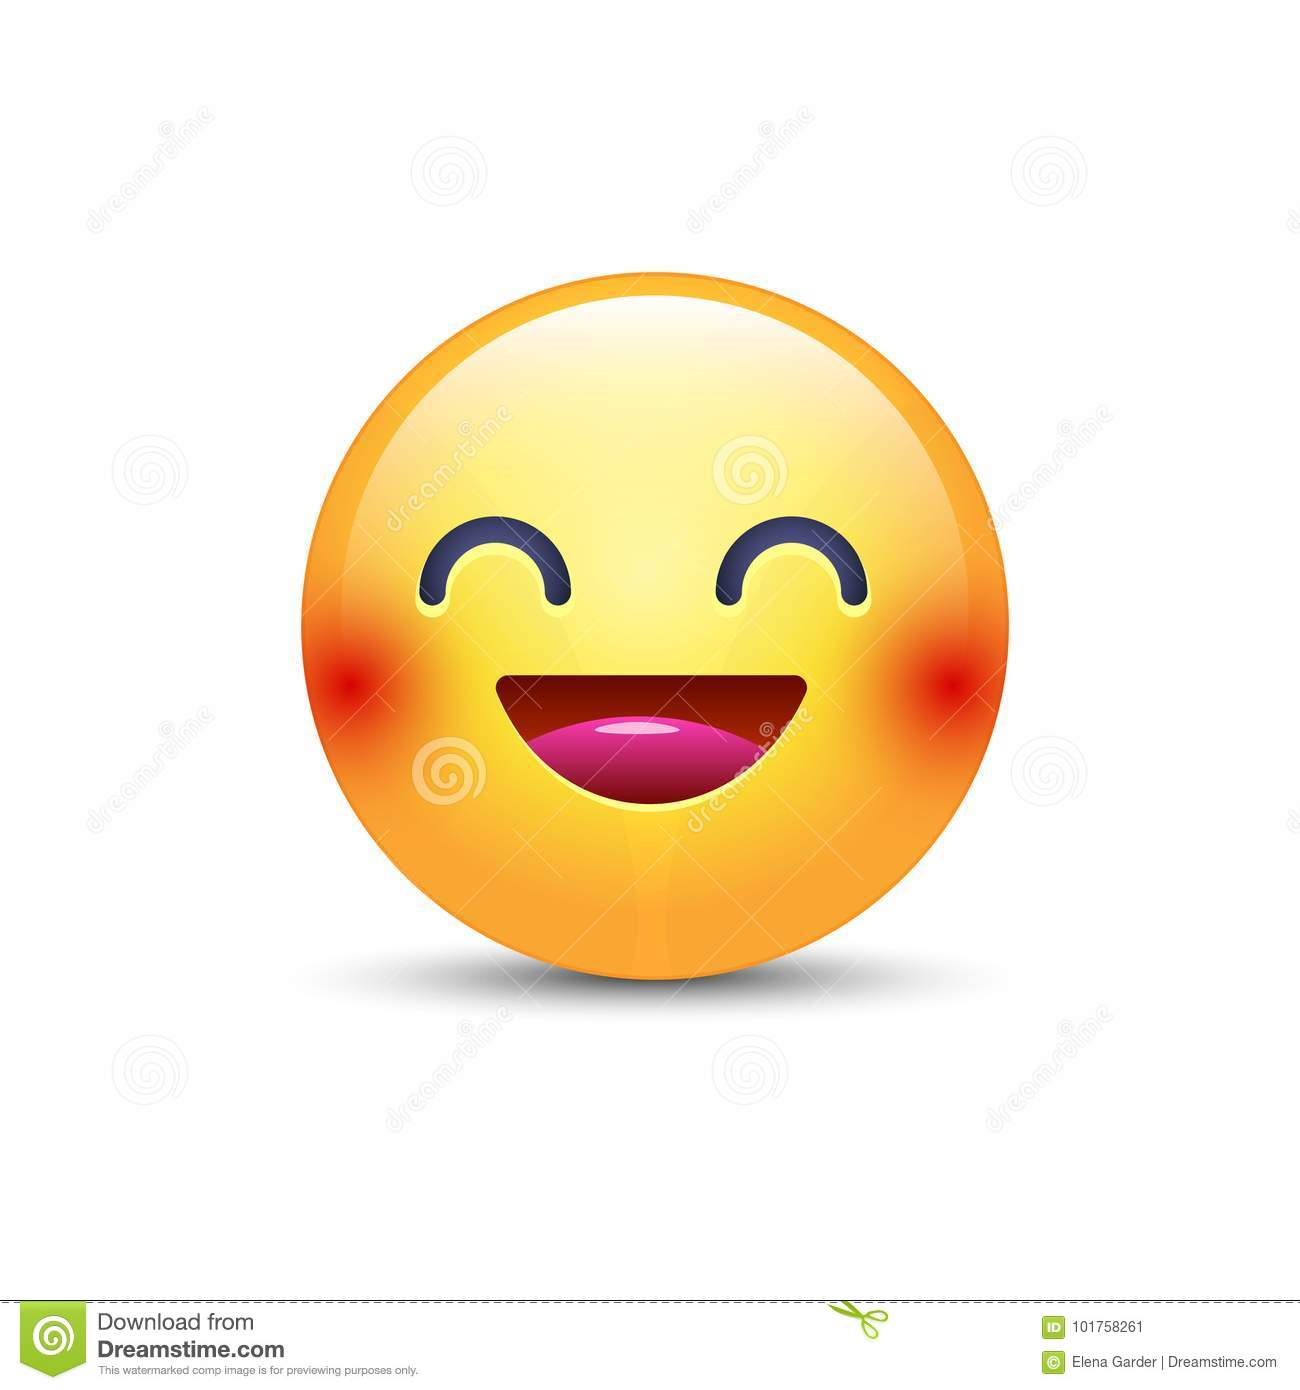 Fun Yellow Cartoon Emoji Face With Smile And Open Eyes. Cute Vector ...